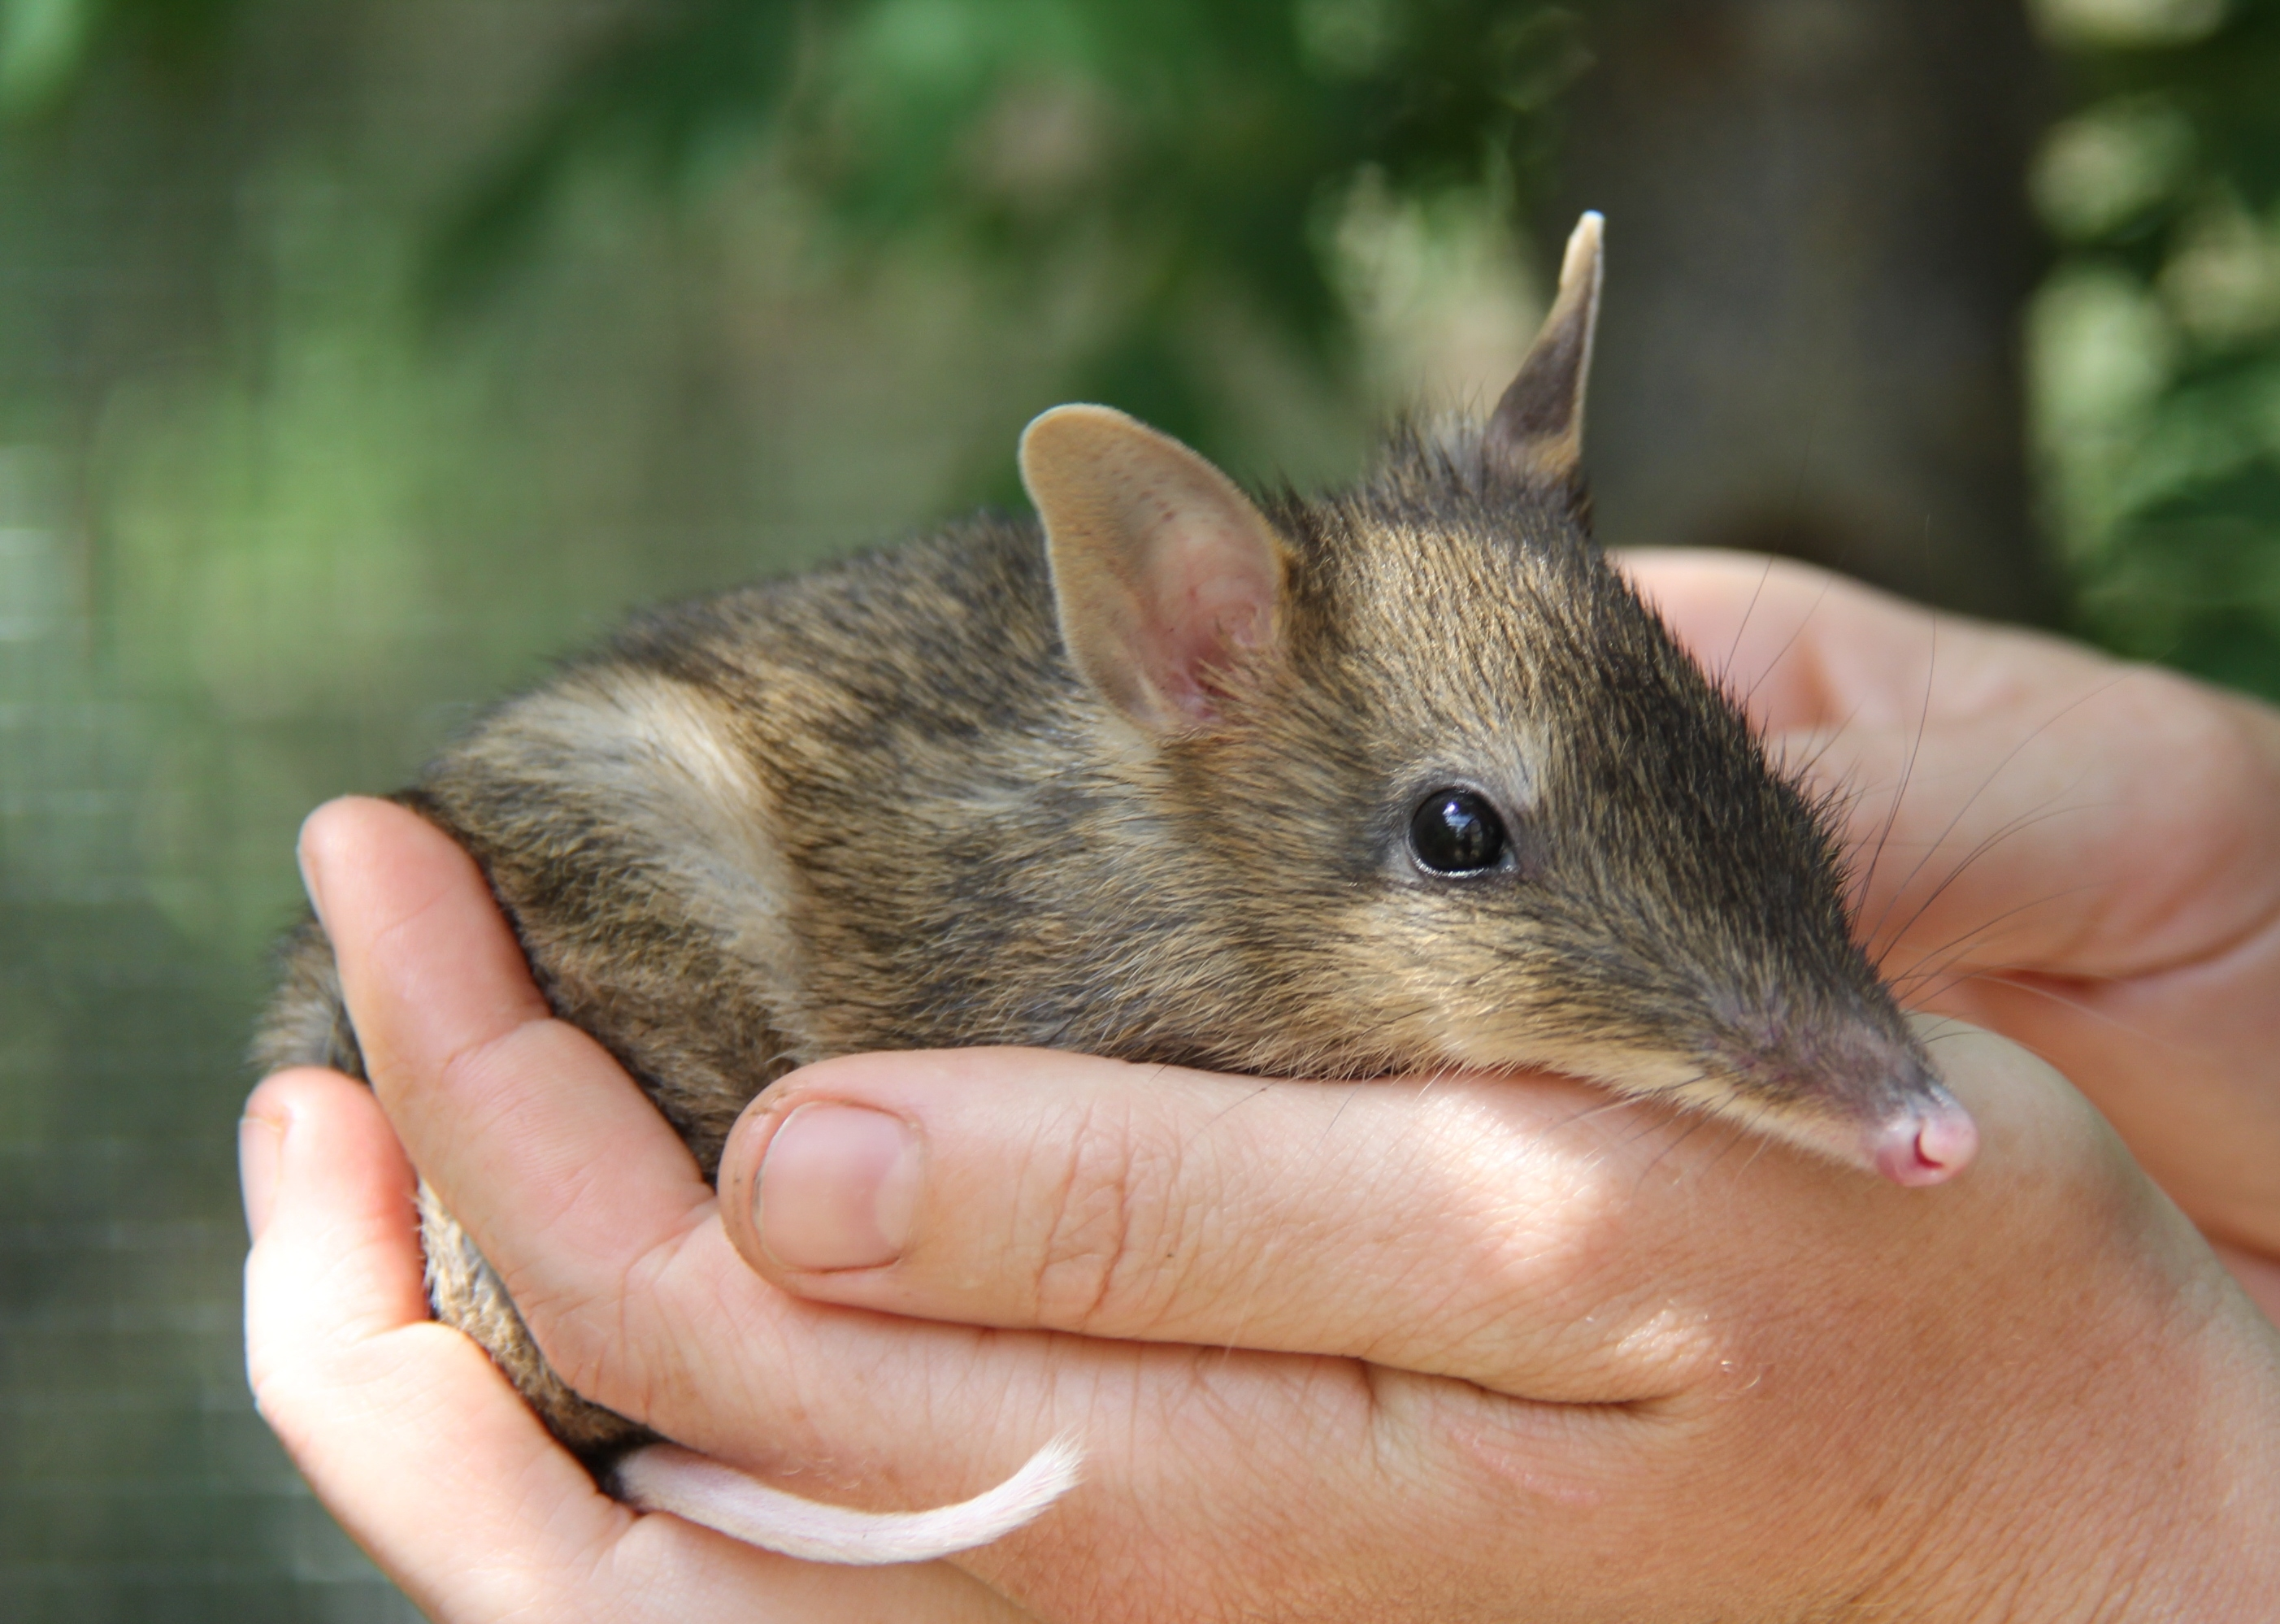 Help Protect Endangered Bandicoots - GlobalGiving